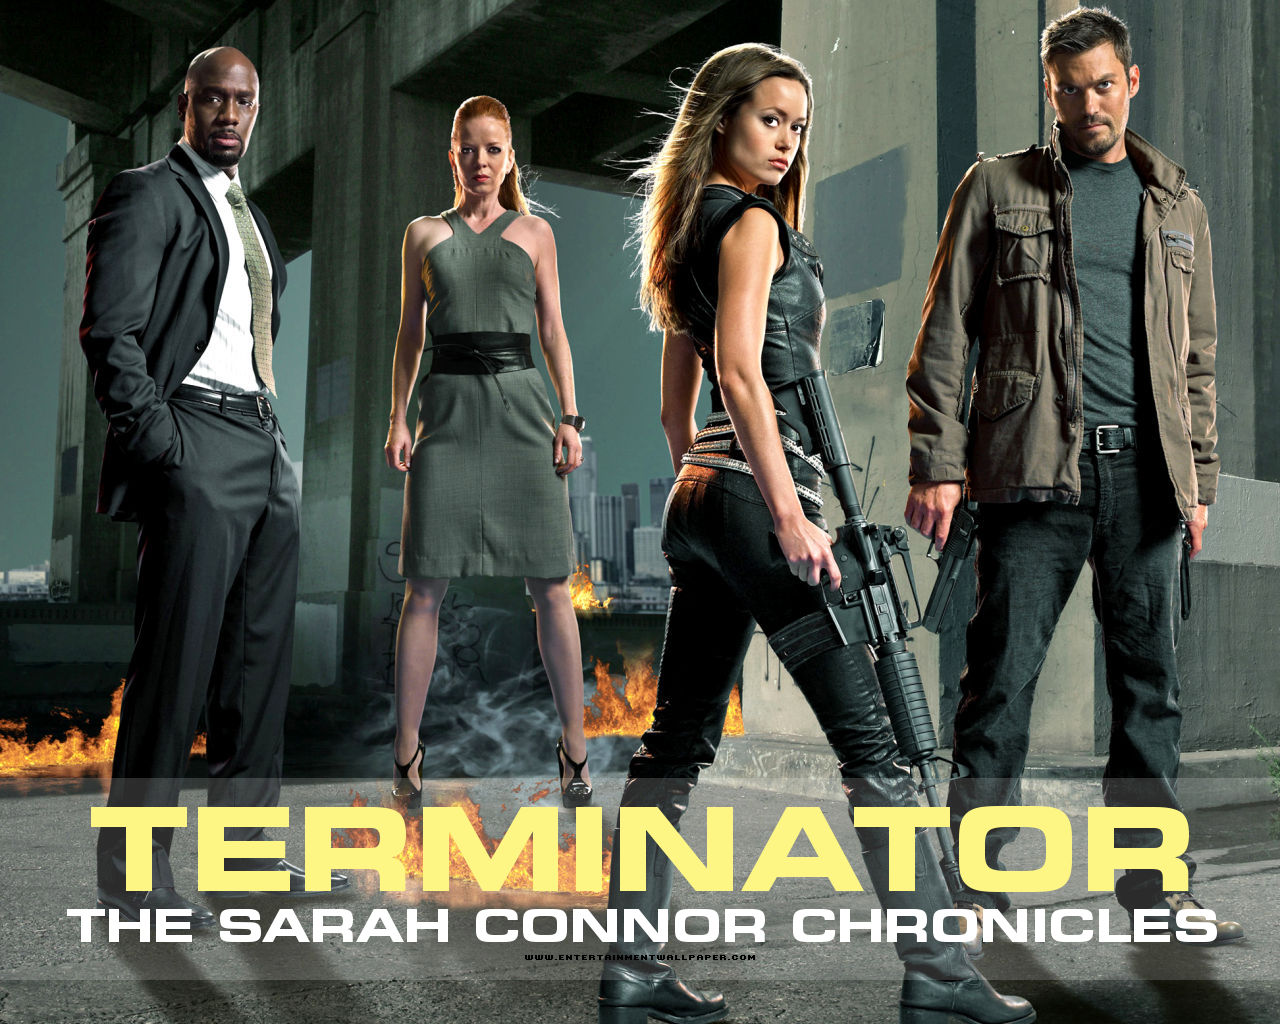 http://2.bp.blogspot.com/-XT8fkN3cnio/TeQlhYimsVI/AAAAAAAABH0/ijj8bfvhHHk/s1600/tv_terminator_the_sarah_connor_chronicles17.jpg